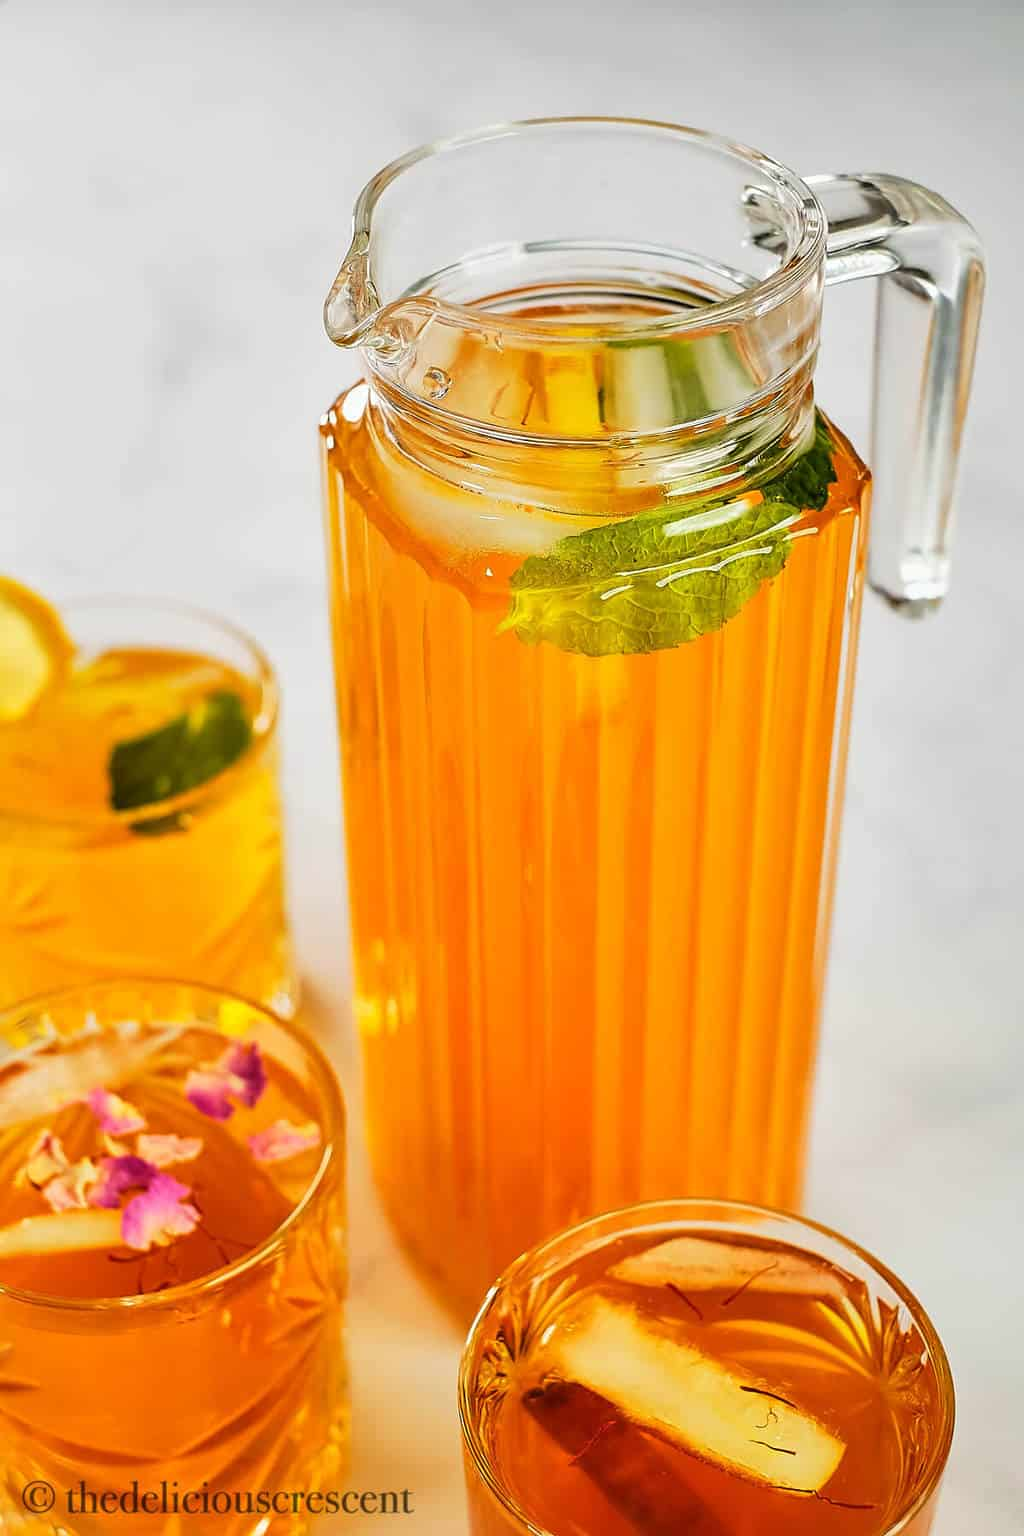 A pitcher full of exotic iced drink prepared with aromatic ingredients.